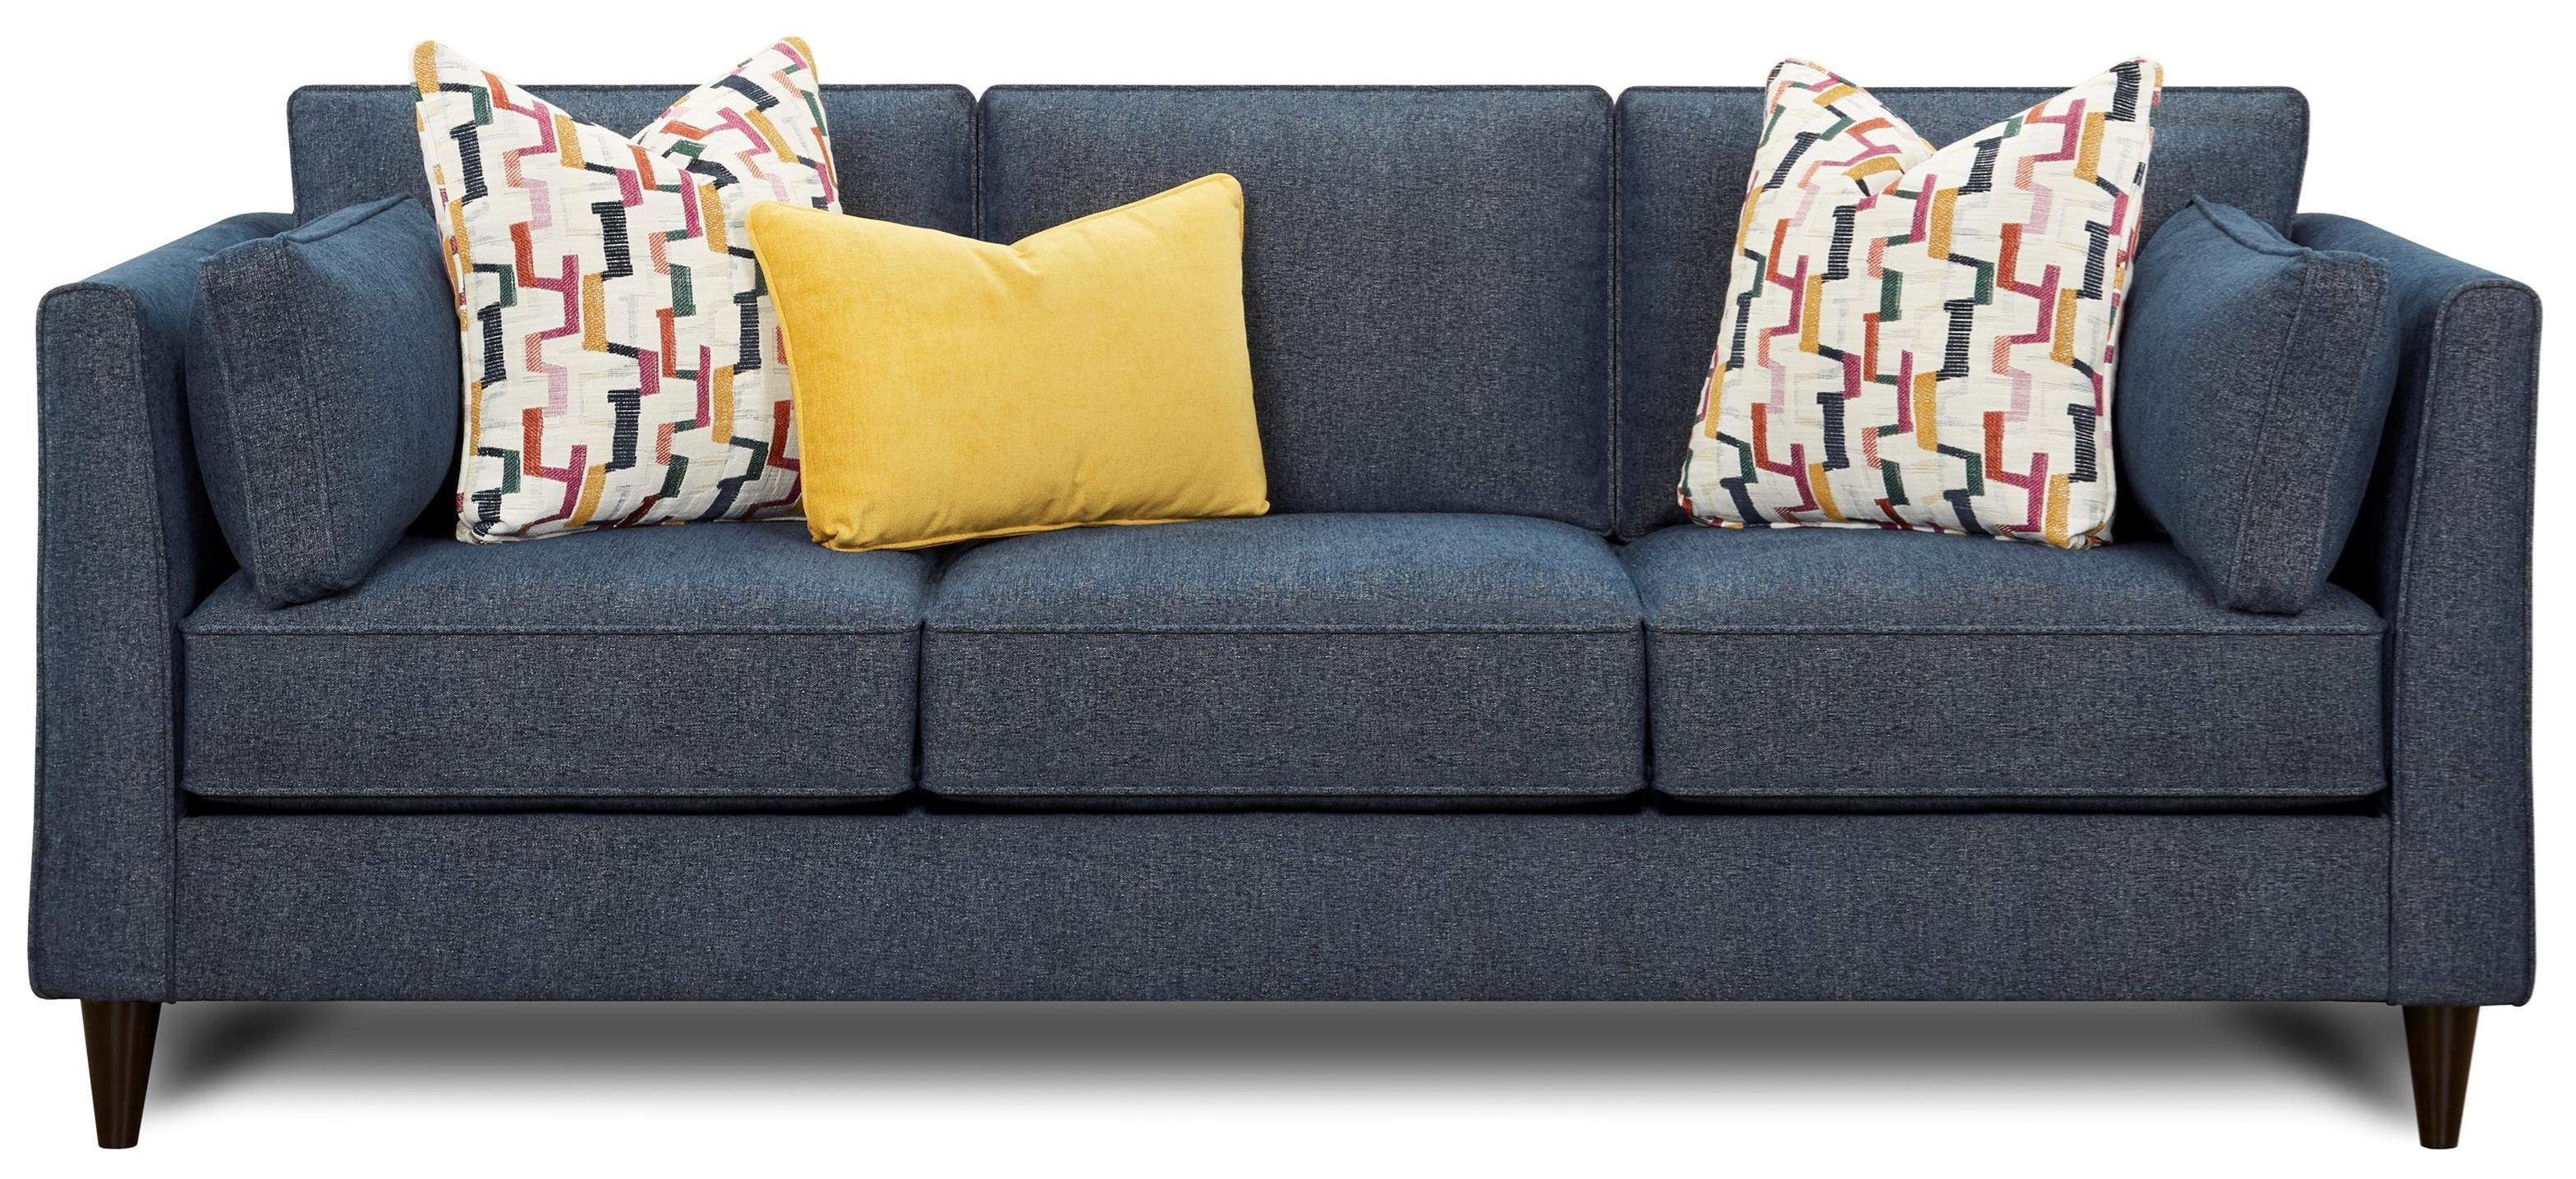 17-00 Sofa by Fusion Furniture at Miller Waldrop Furniture and Decor